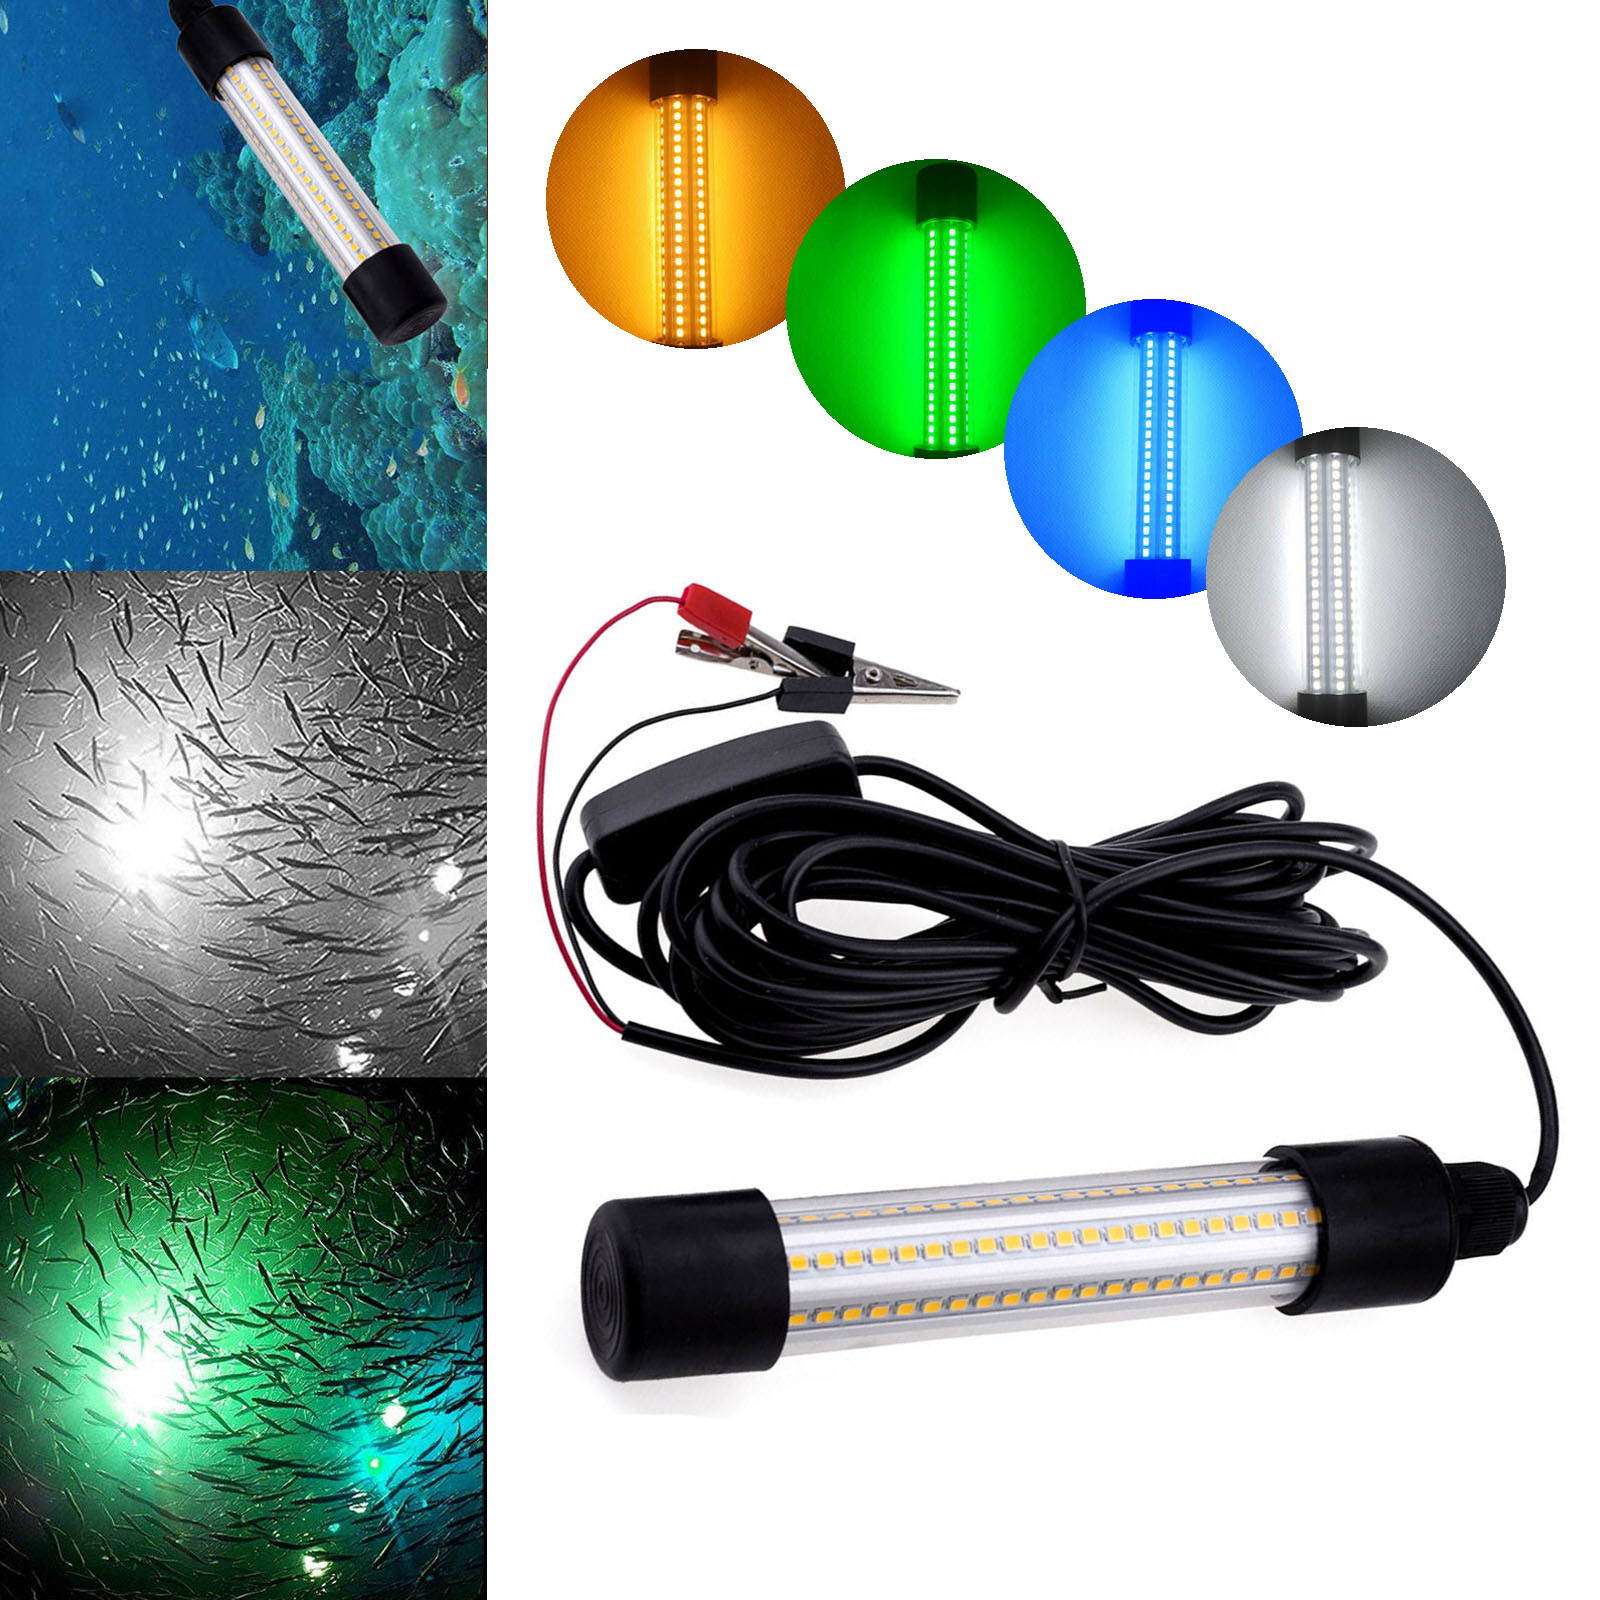 LED Underwater Light Lamp 12V 1200LM Waterproof For Submersible Night Fishing Boat Outdoor Lighting White Warm Green Blue Lights